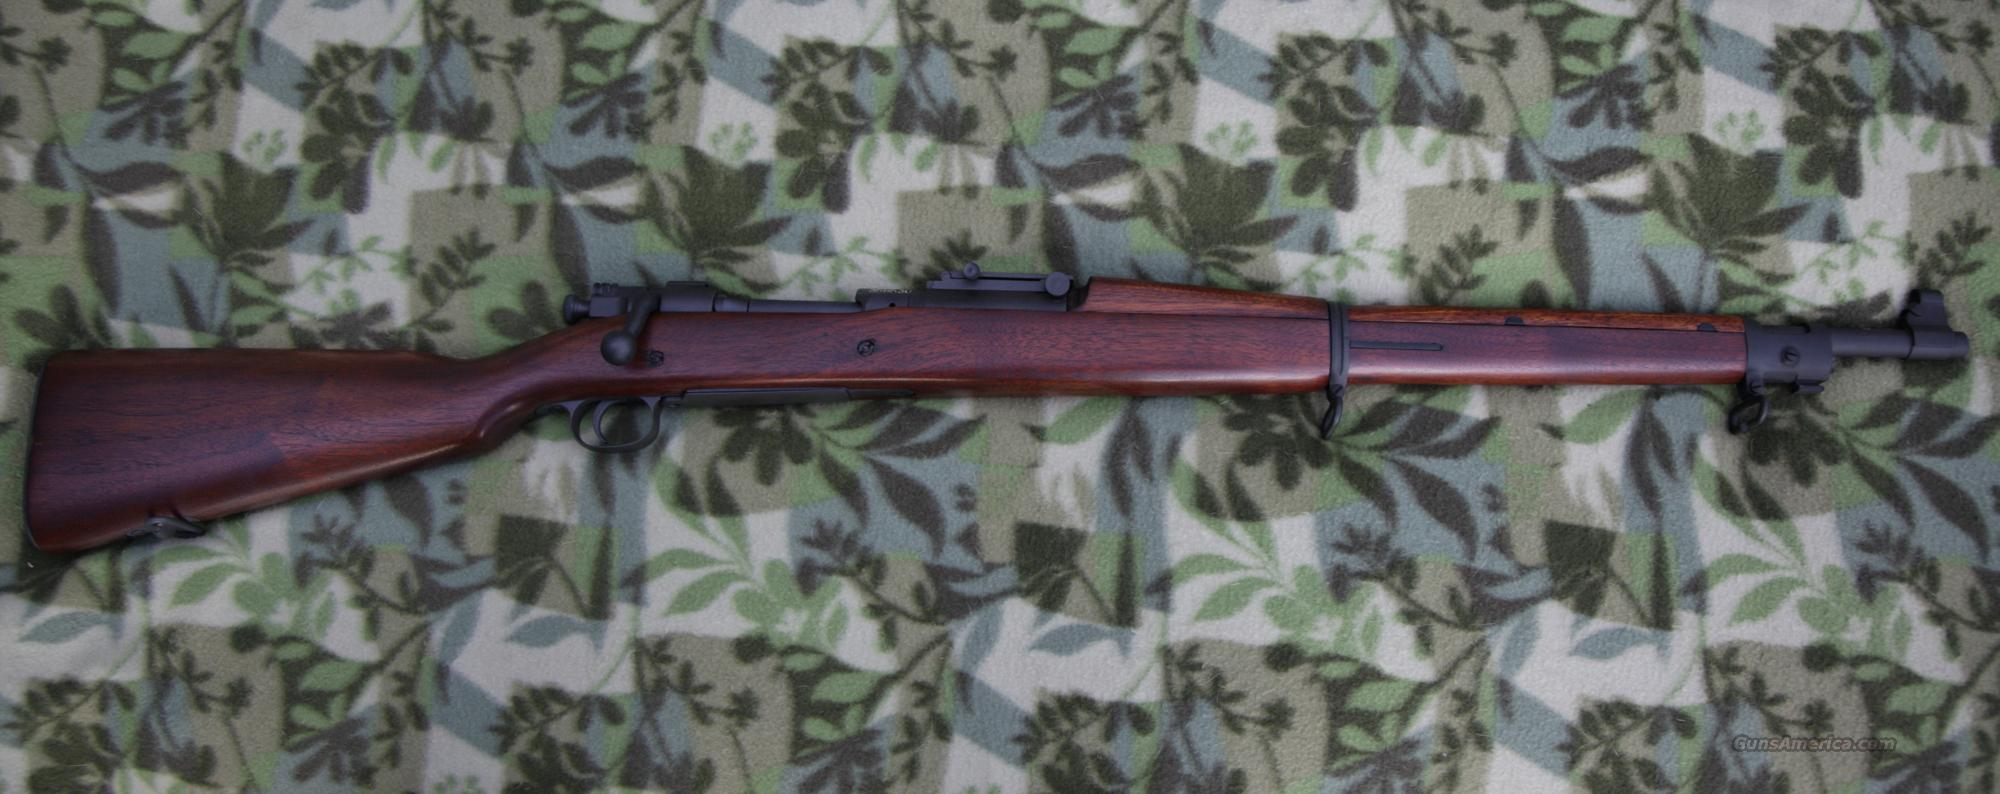 Rock Island Arsenal 1903 Service Rifle - Price drop!  Guns > Rifles > Military Misc. Rifles US > 1903 Springfield/Variants